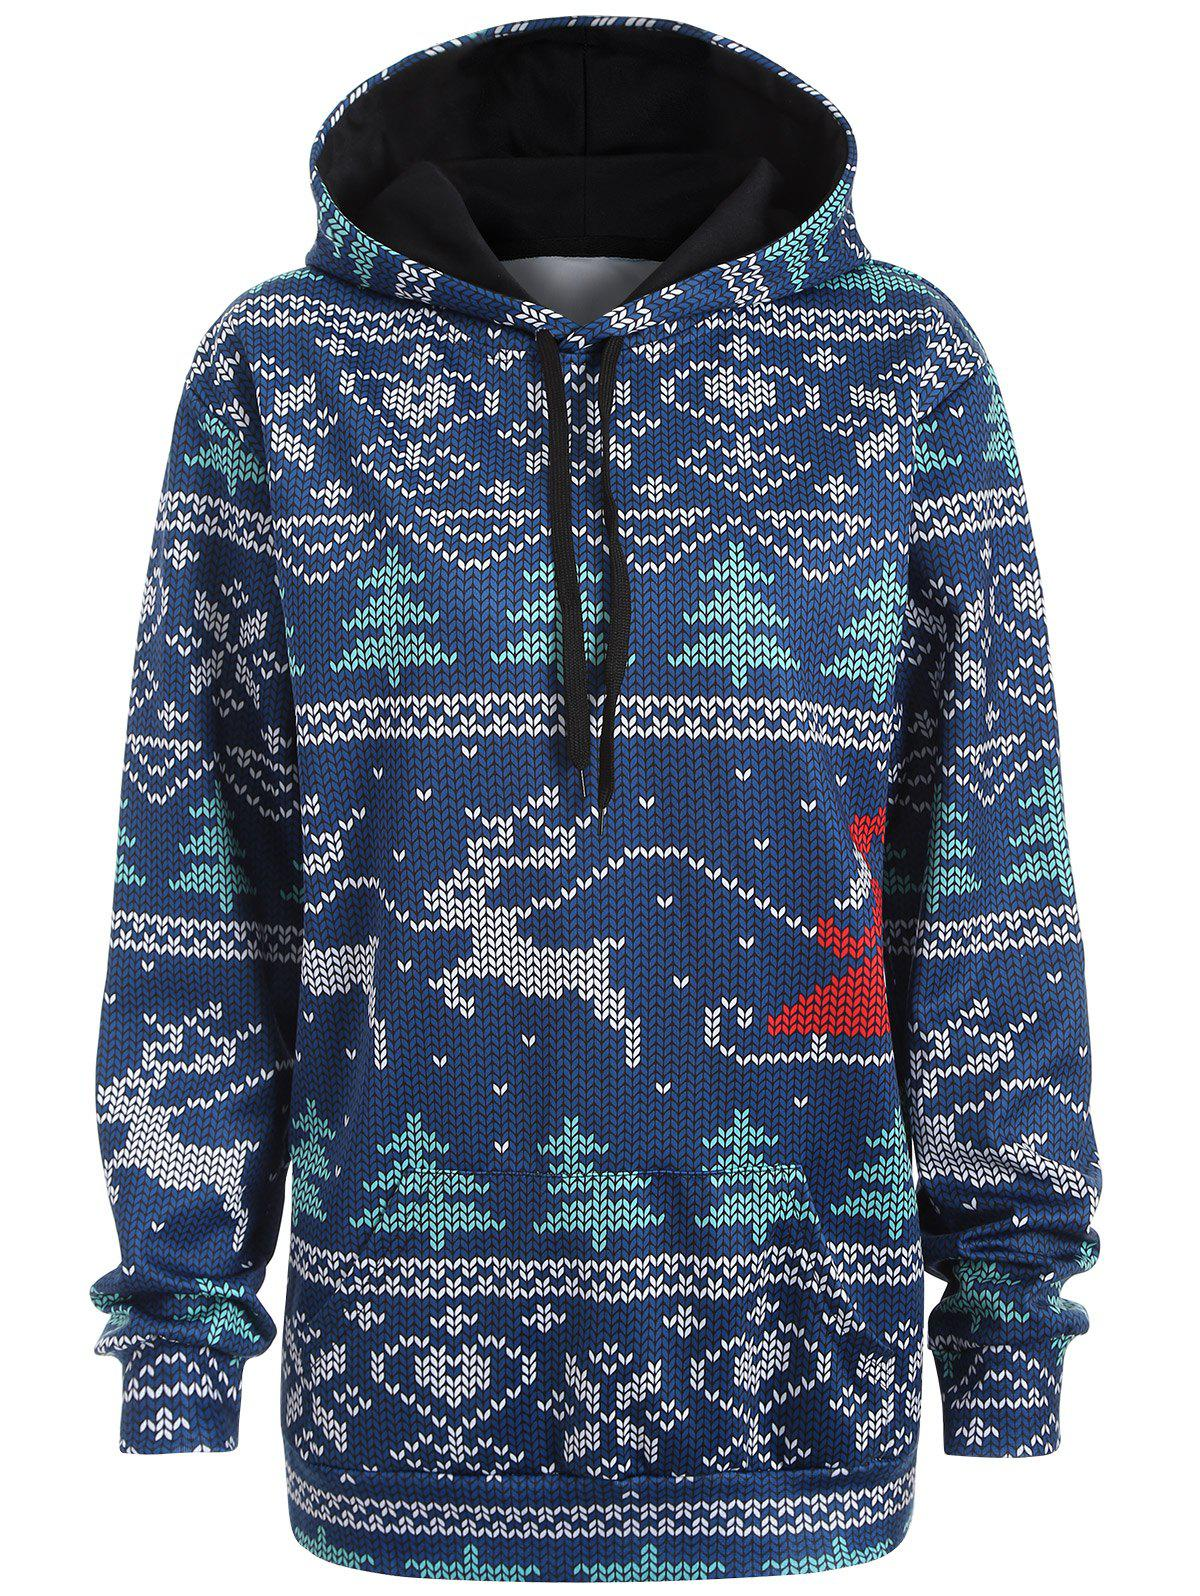 Plus Size Christmas Drawstring Kangaroo Pocket Patterned Hoodies - NAVY BLUE L